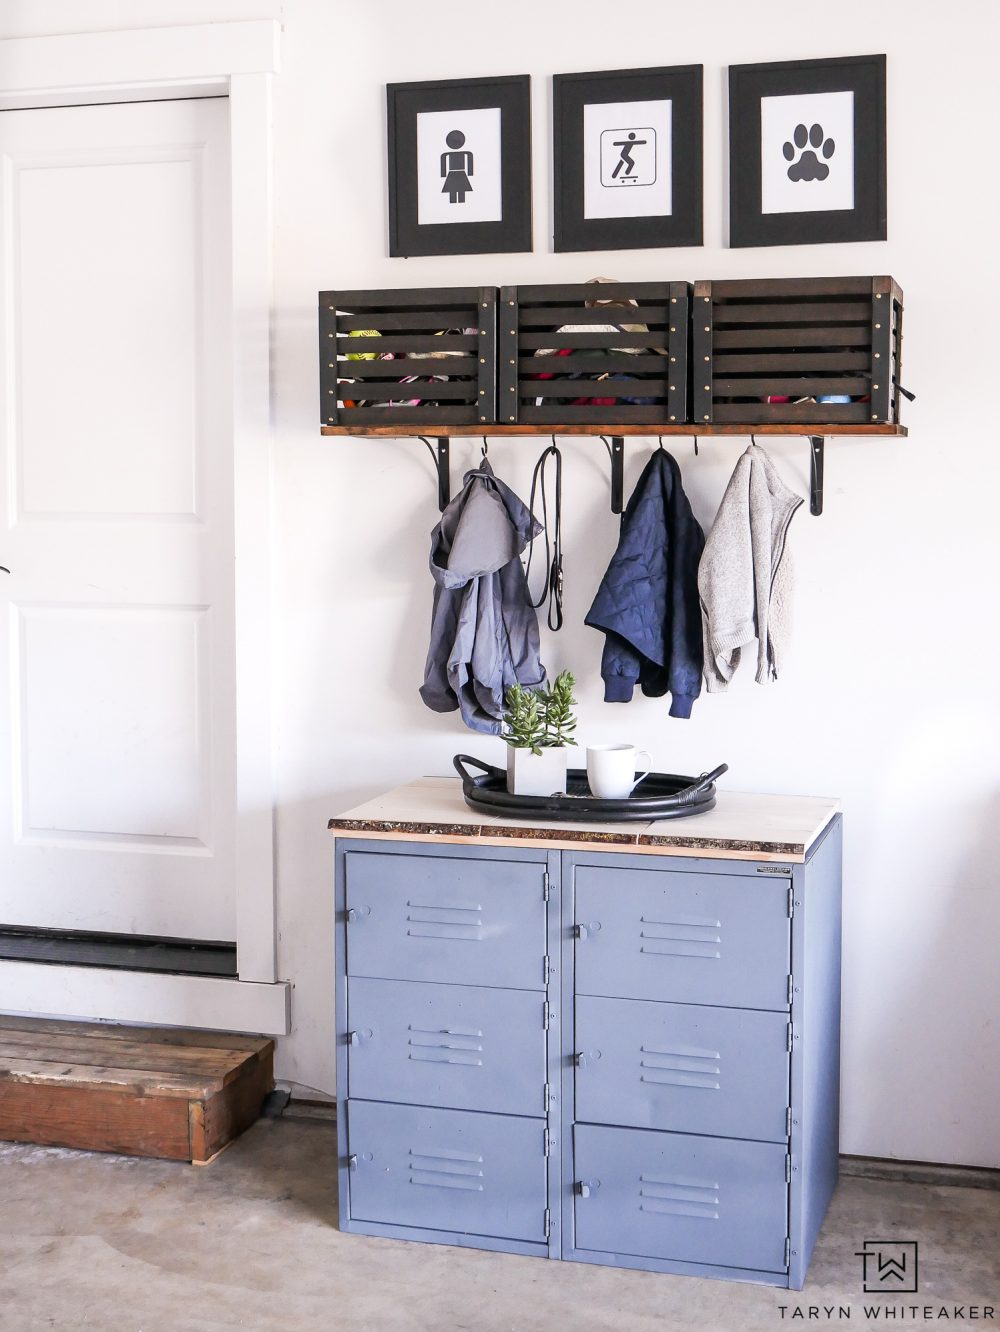 Great idea for more garage organization! Love this rustic modern take on a drop station for kids!